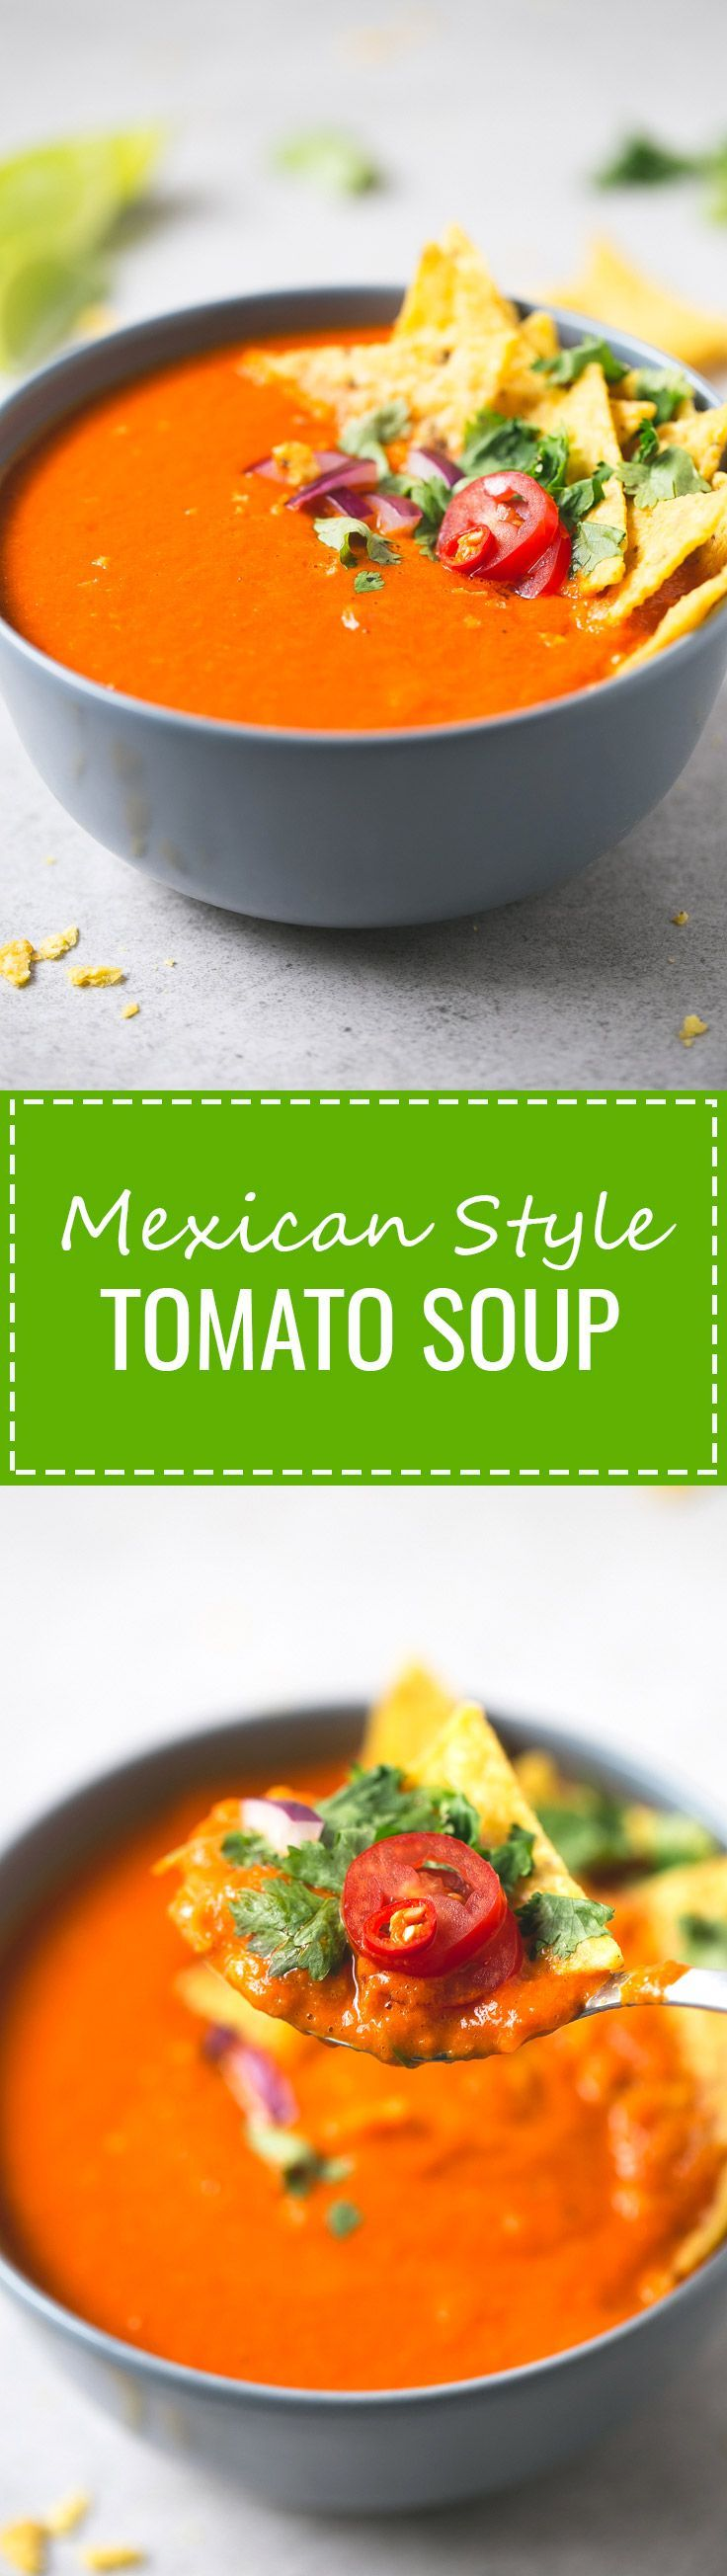 Mexican Style Tomato Soup - This Mexican-style tomato soup is perfect if you want a healthy, warm, comforting meal and just have 15 or 20 minutes to cook.